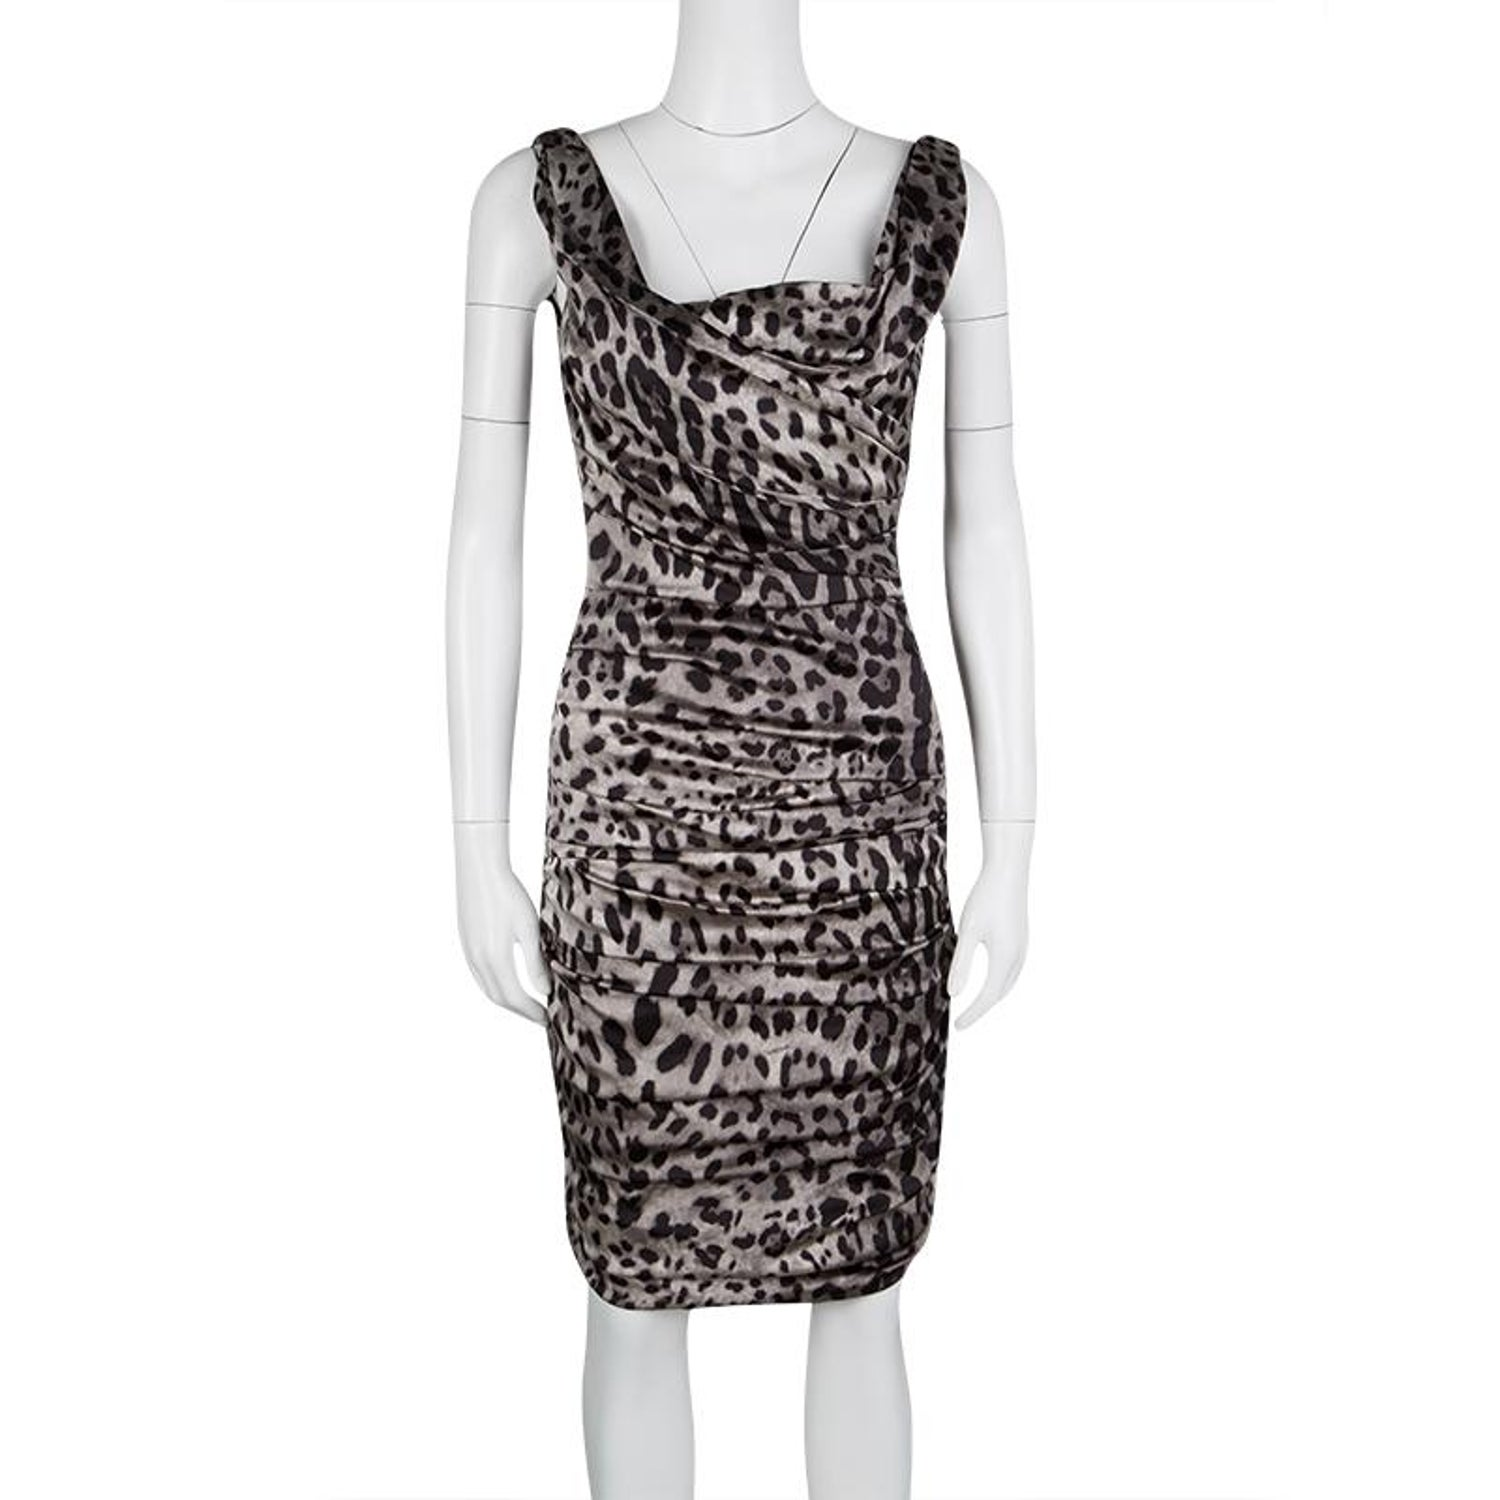 ffad9d44 Dolce and Gabbana Grey Animal Print Silk Ruched Sleeveless Dress S For Sale  at 1stdibs